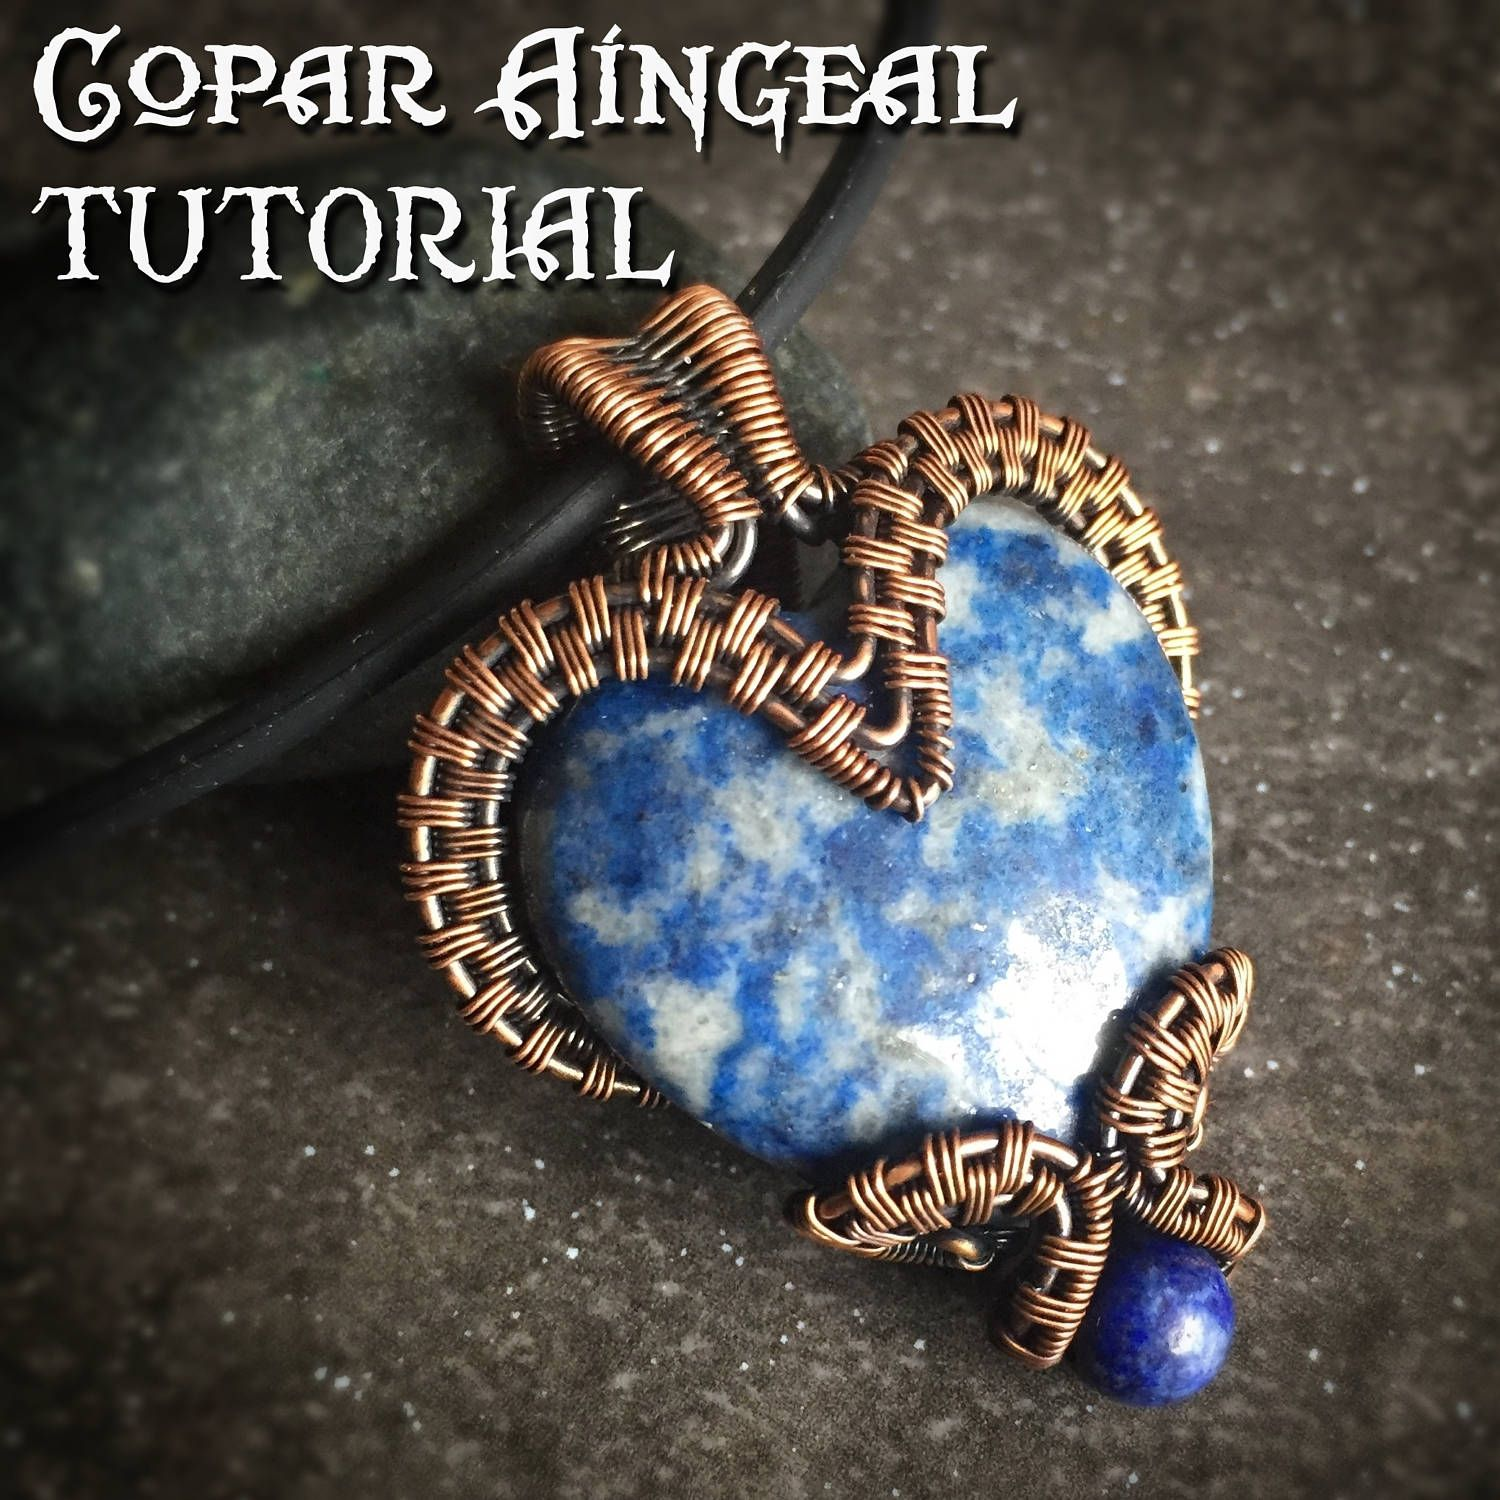 Tutorial bottled heart pendant wire wrapping jewelry pattern tutorial bottled heart pendant wire wrapping jewelry pattern puffy heart cabochon wire baditri Images